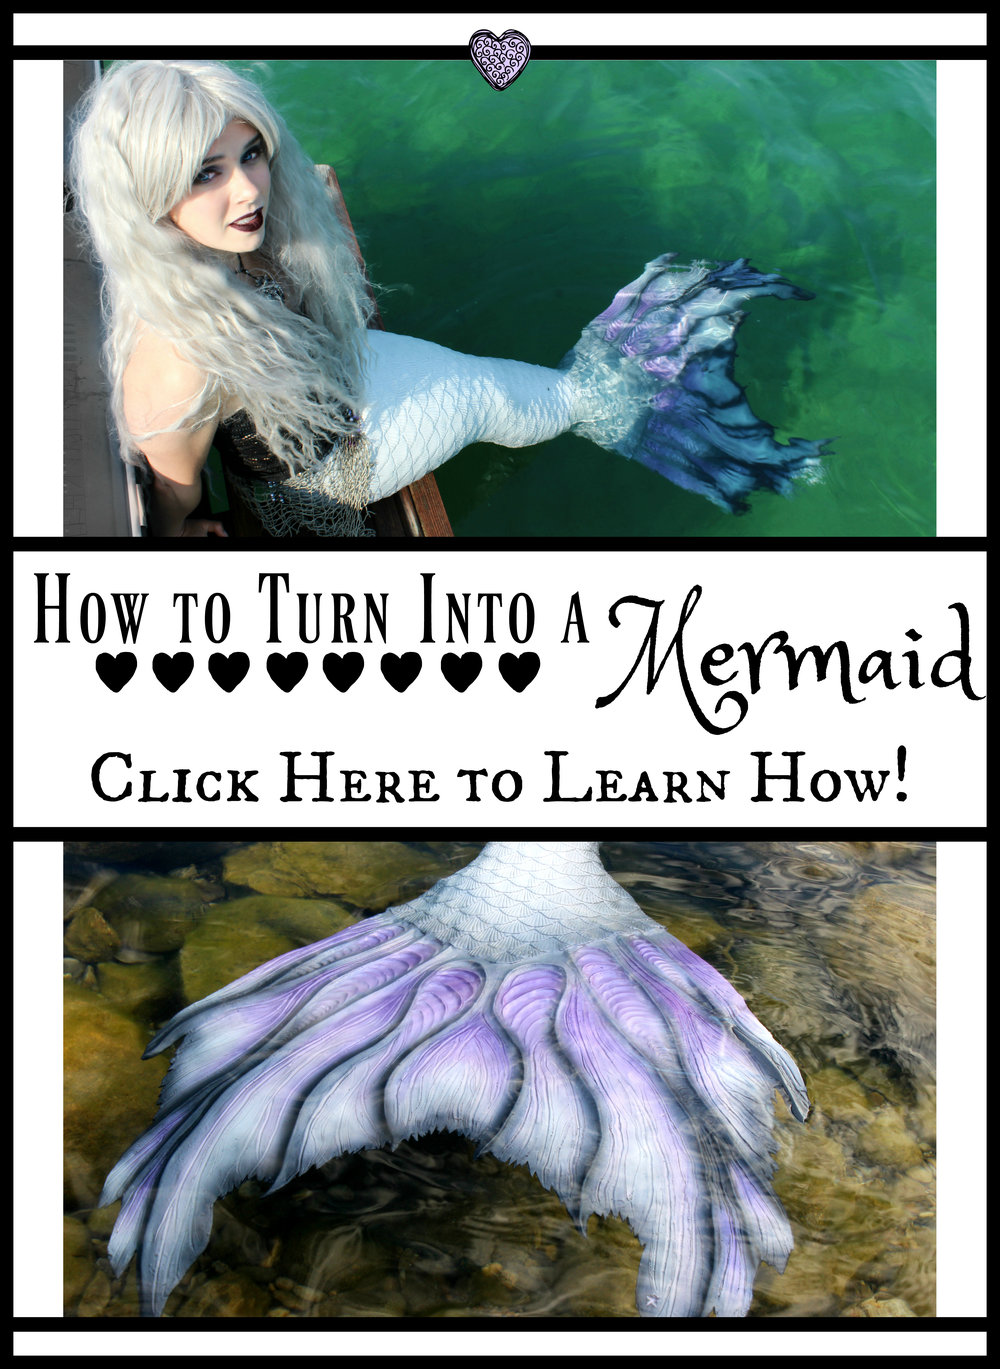 How to turn in to a Mermaid without a Magic Spell: How do you become a real mermaid? Read this blog post to find out how you can transform yourself into a mermaid or merman in 4 EASY ways. (Must be 18 years or older to read, unless you have and adult with you please! ♥)